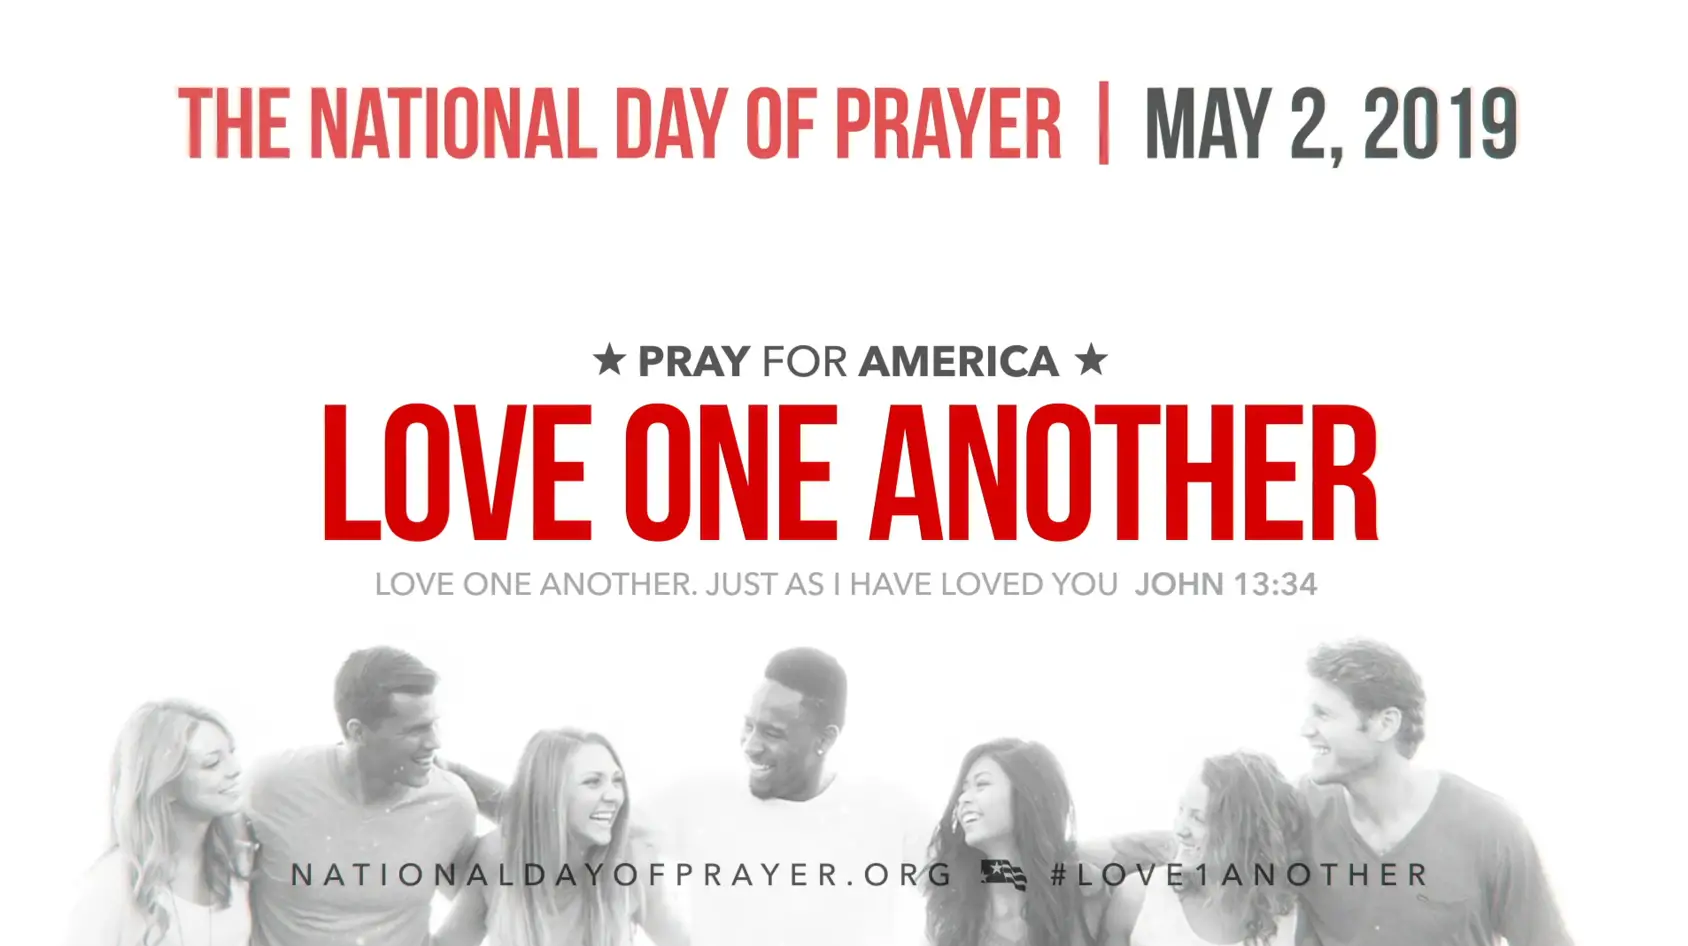 Local National Day of Prayer Event to be Held in Jasper Thursday Evening